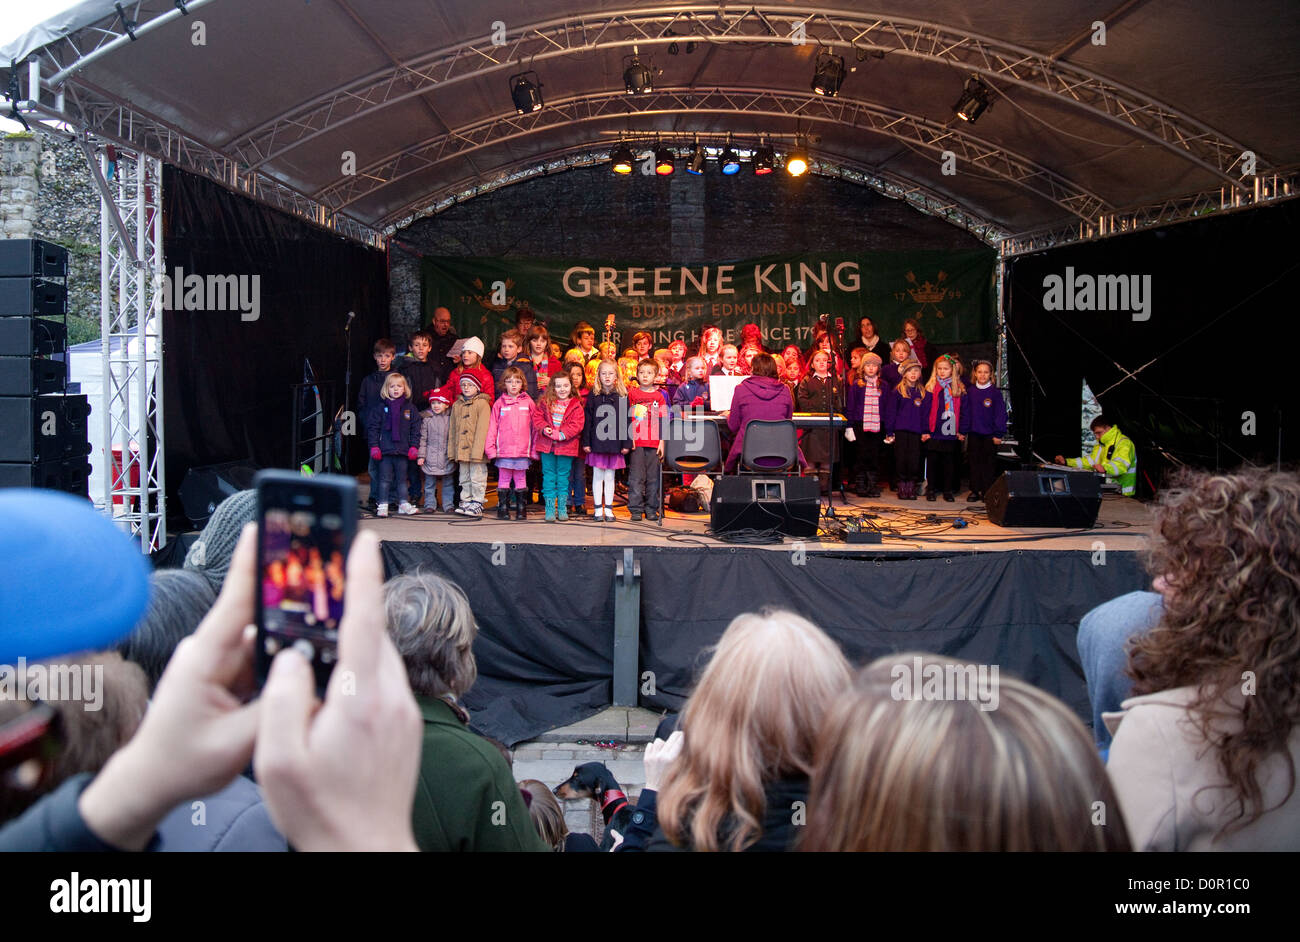 Primary School children singing on stage in public, Bury St Edmunds Christmas market, Suffolk England UK - Stock Image